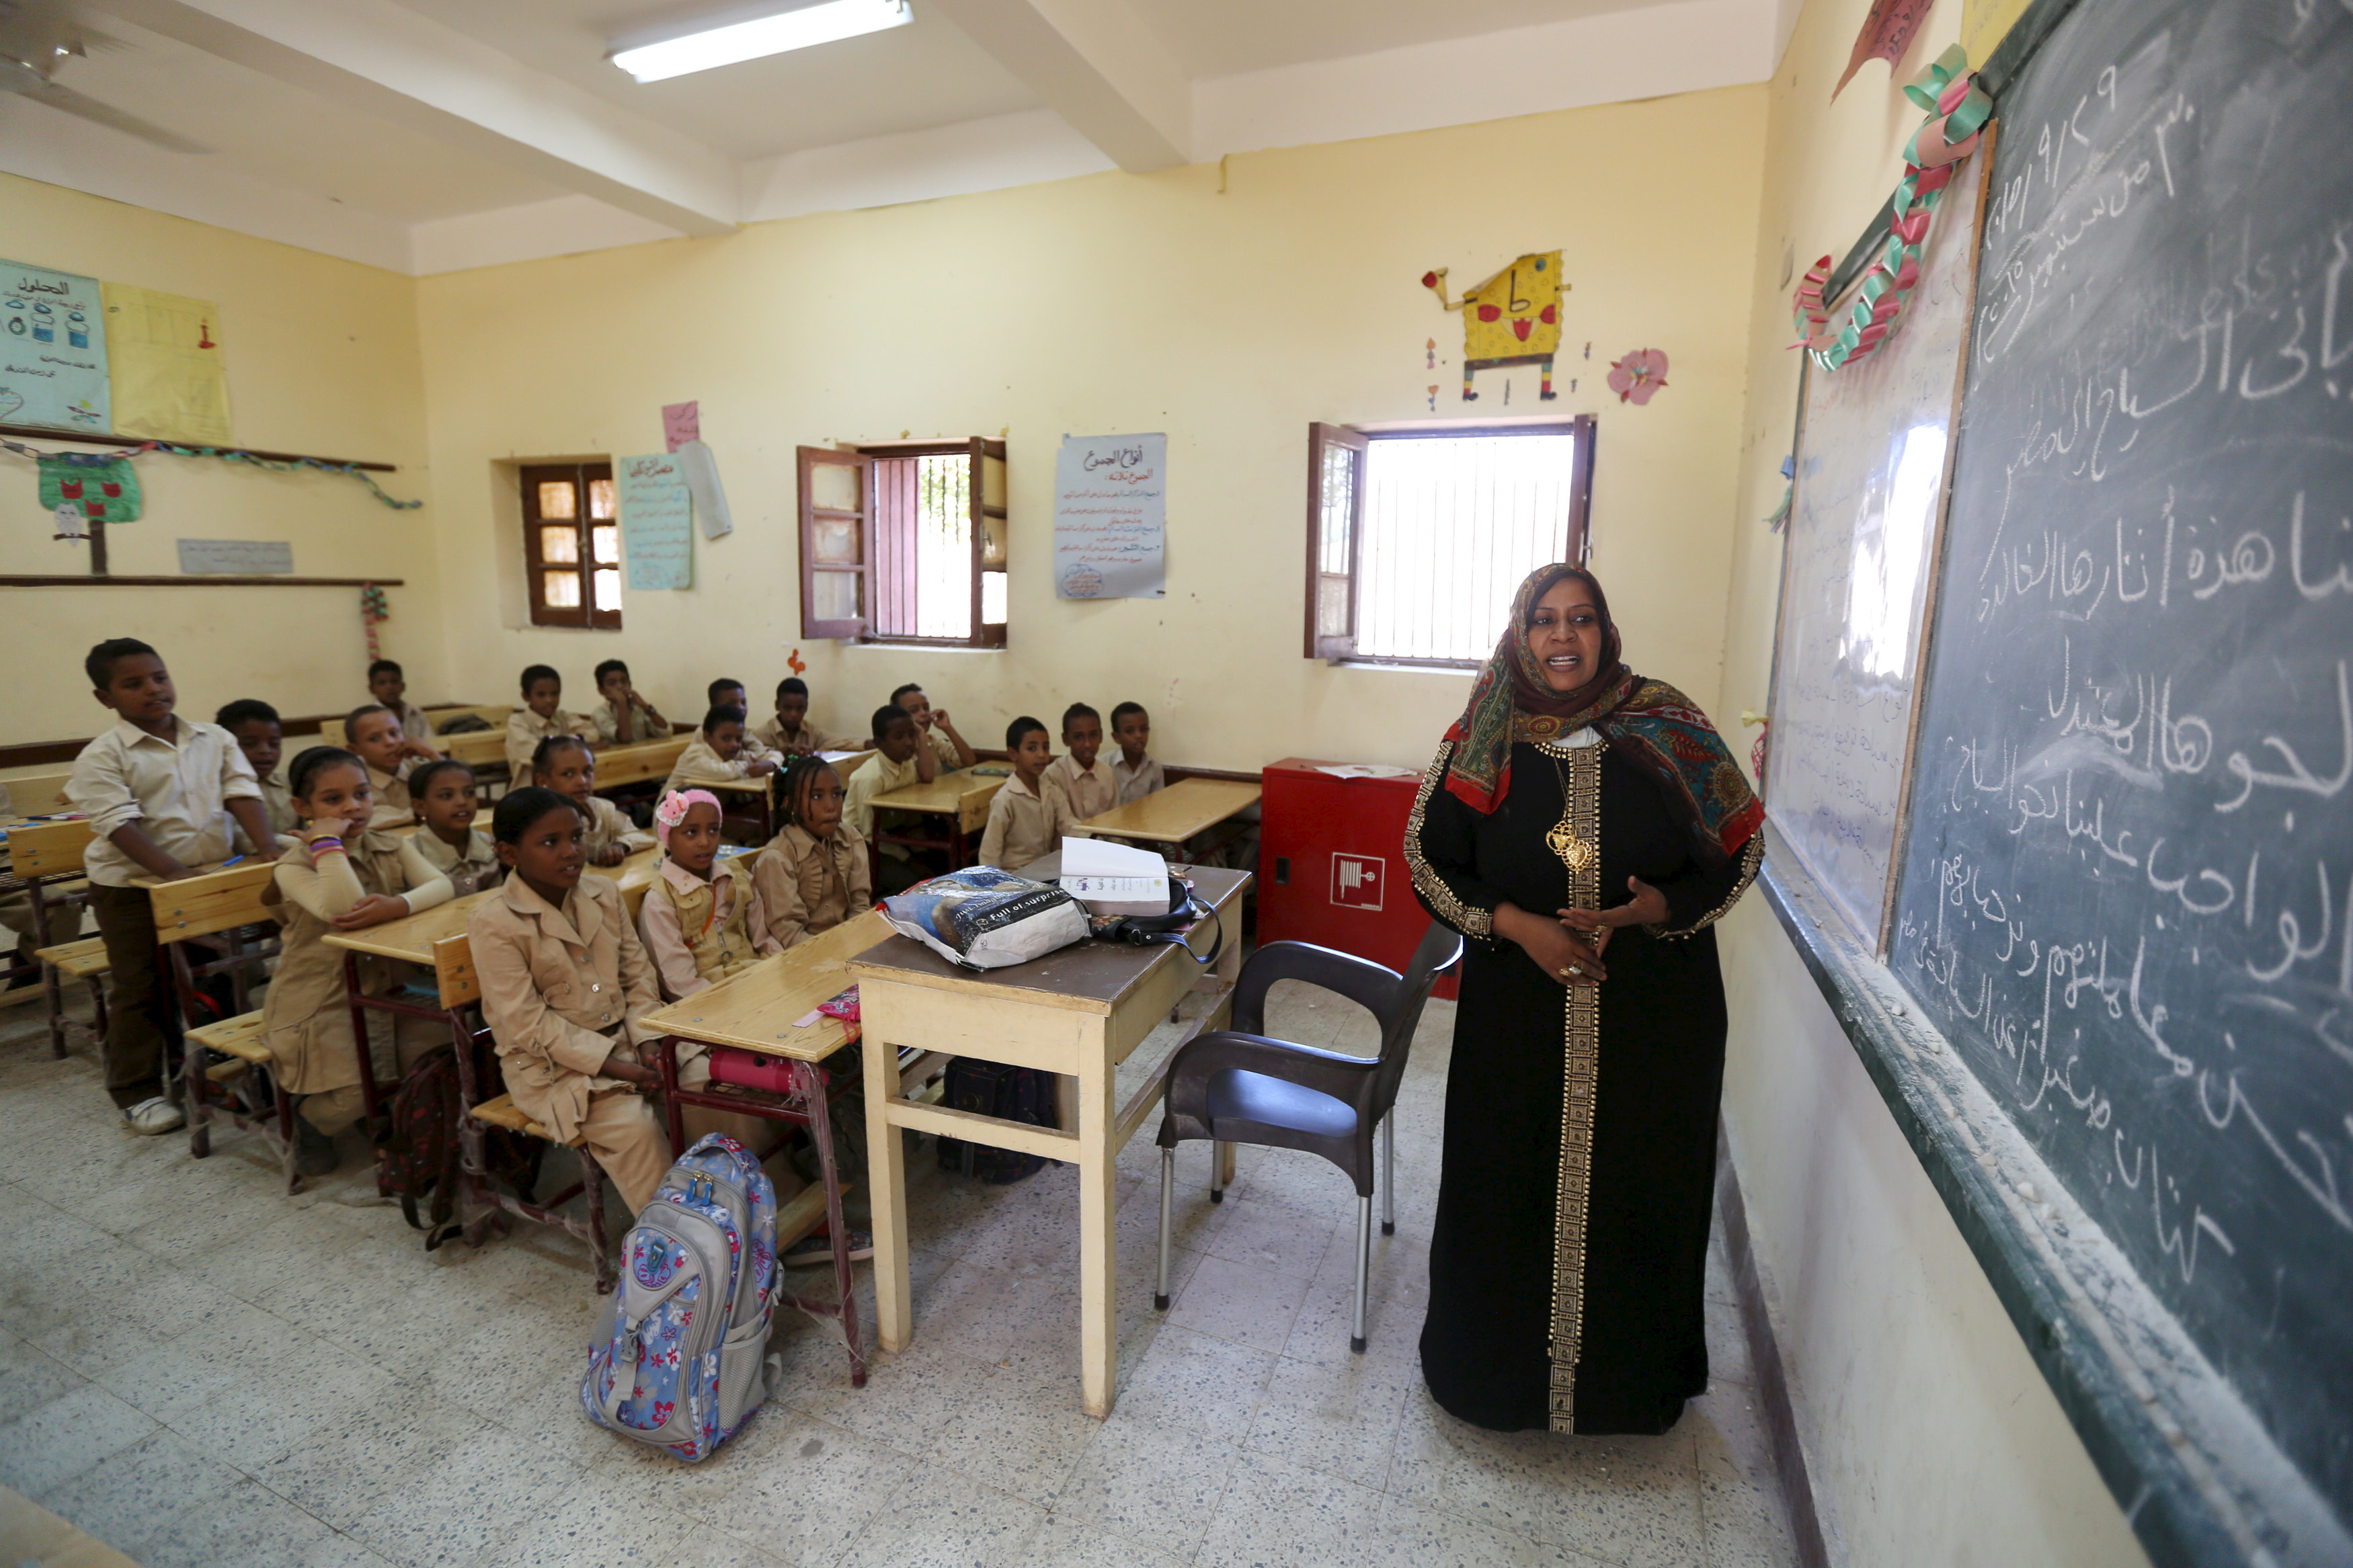 A teacher conducts a lesson at a school in the Nubian village of Adindan.